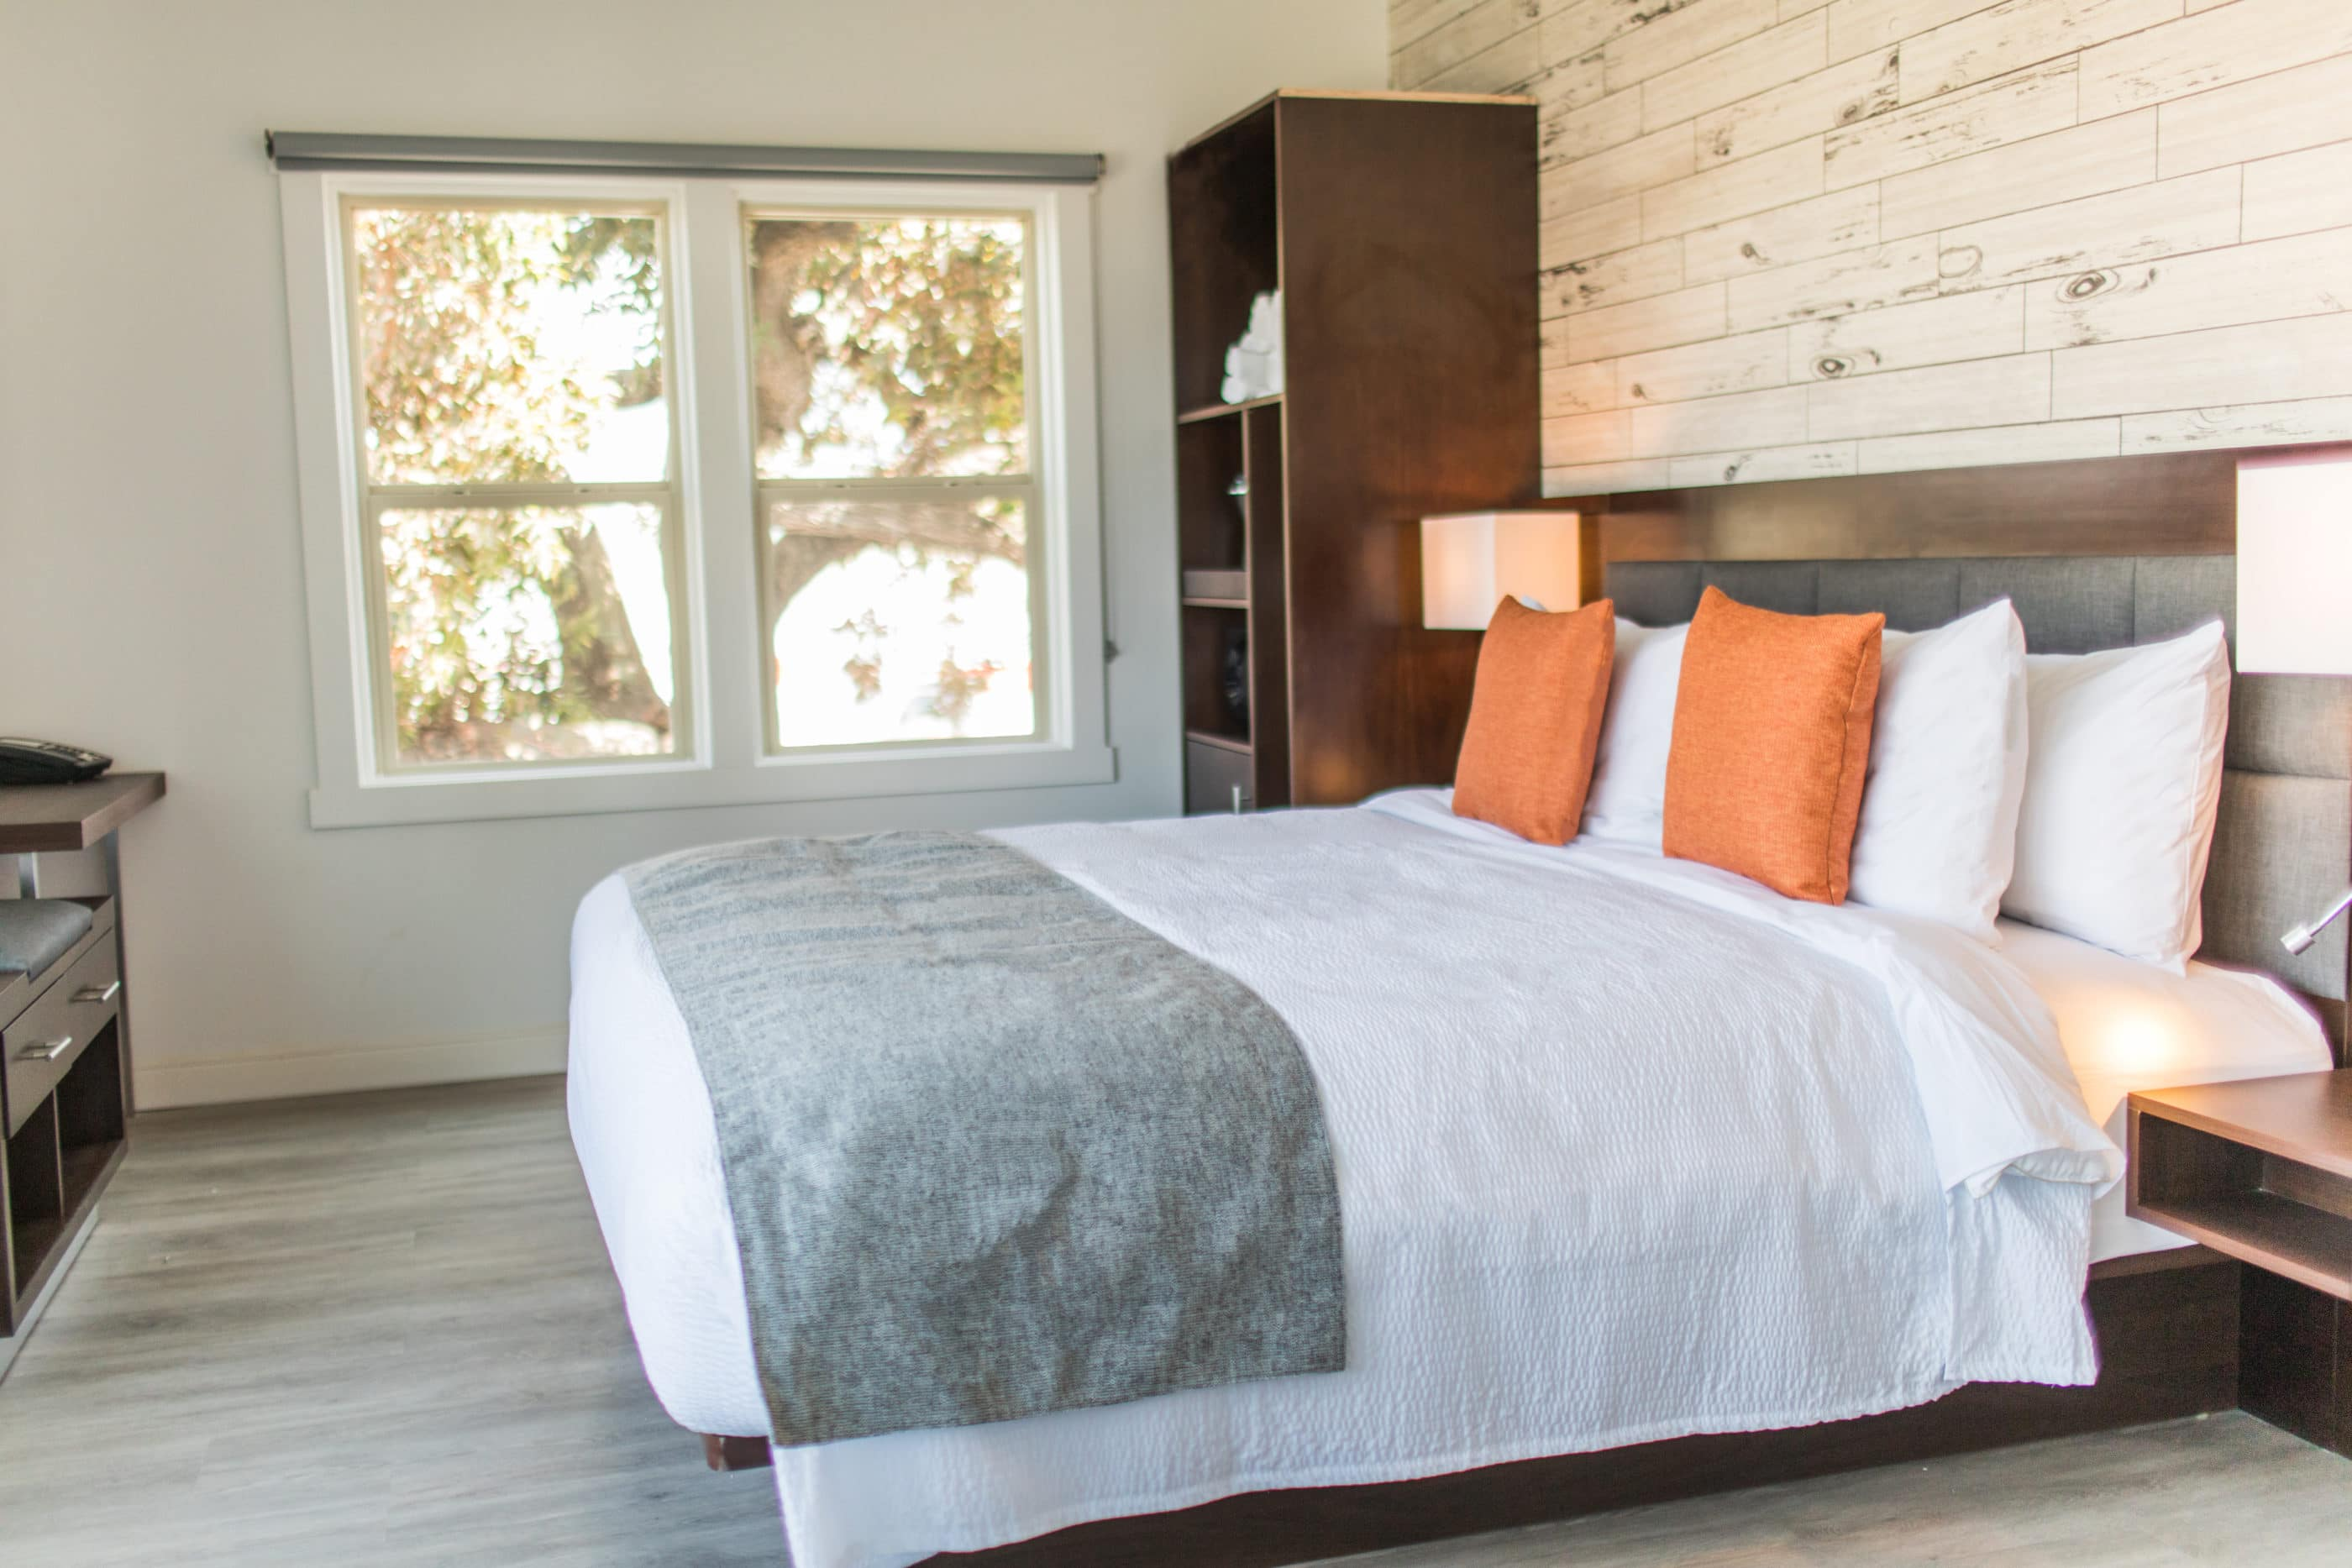 Guestroom with contemporary decor (bed with crisp white sheets, orange throw pillows and a grey blanket across the edge) at The Fin Oceanside